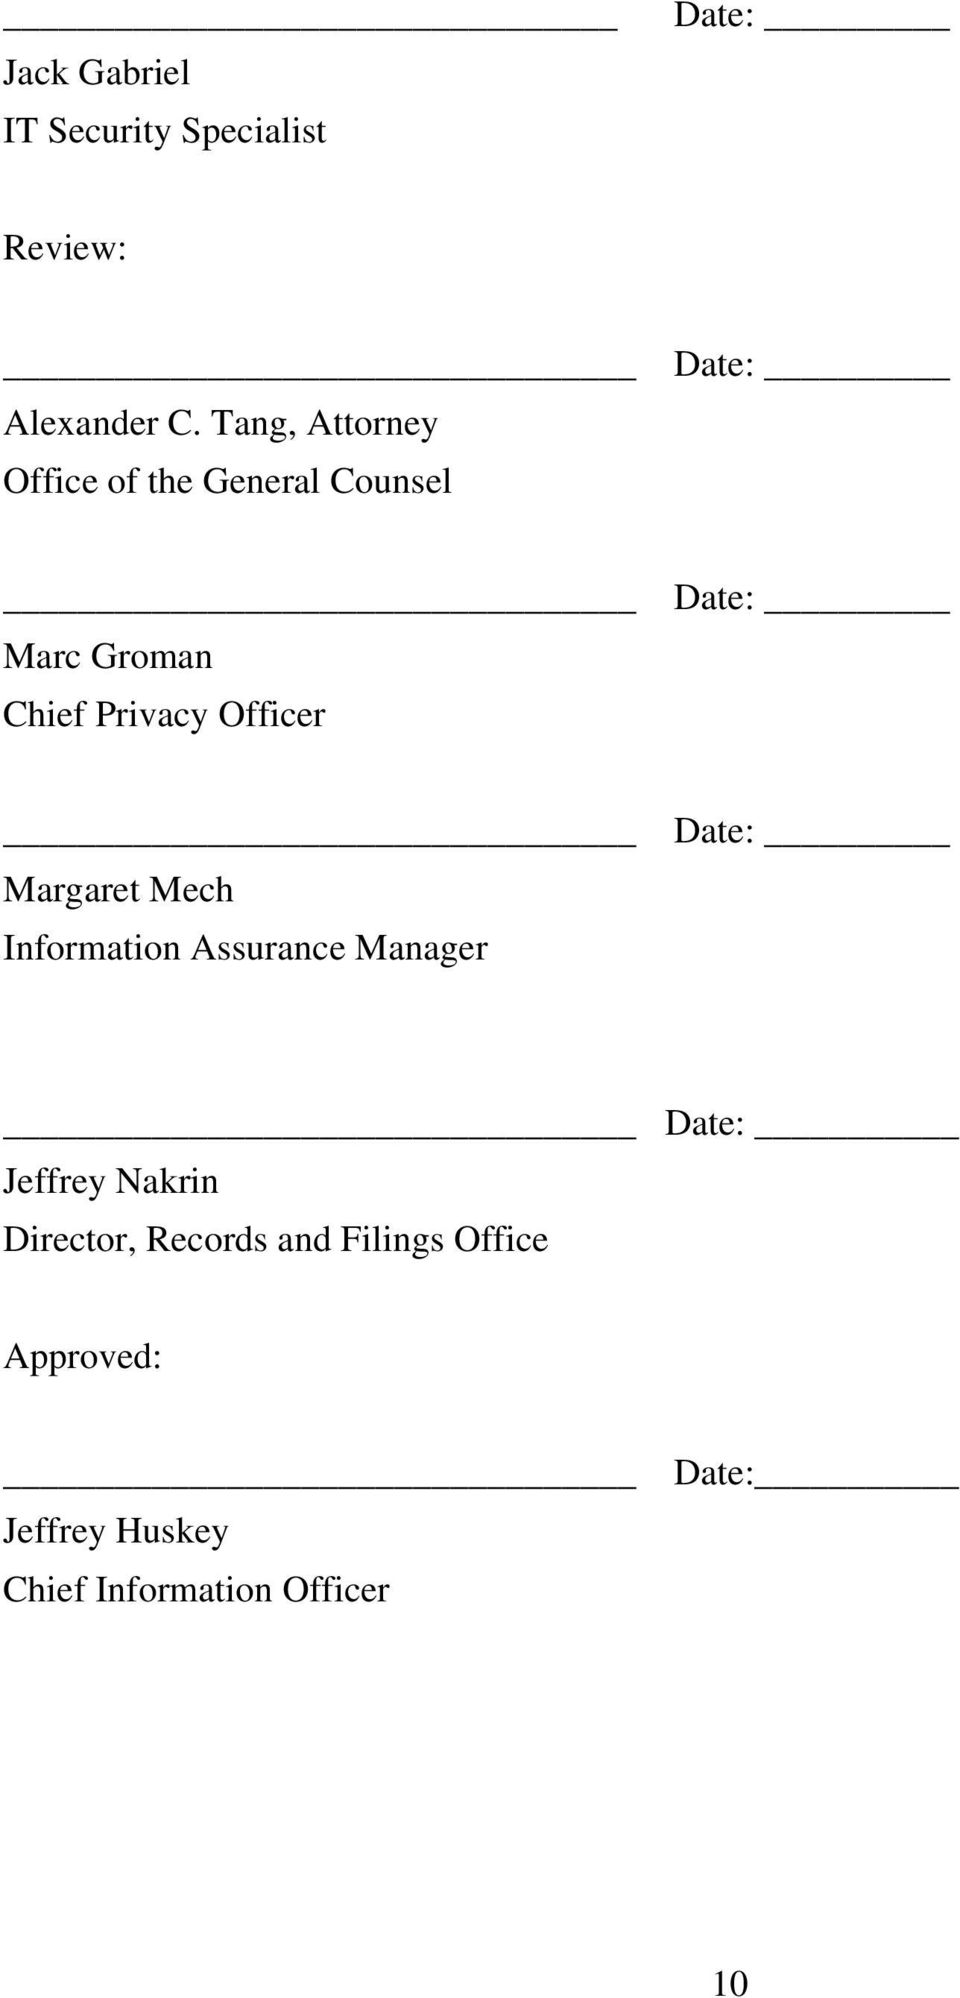 Privacy Officer Date: Margaret Mech Information Assurance Manager Date: Jeffrey